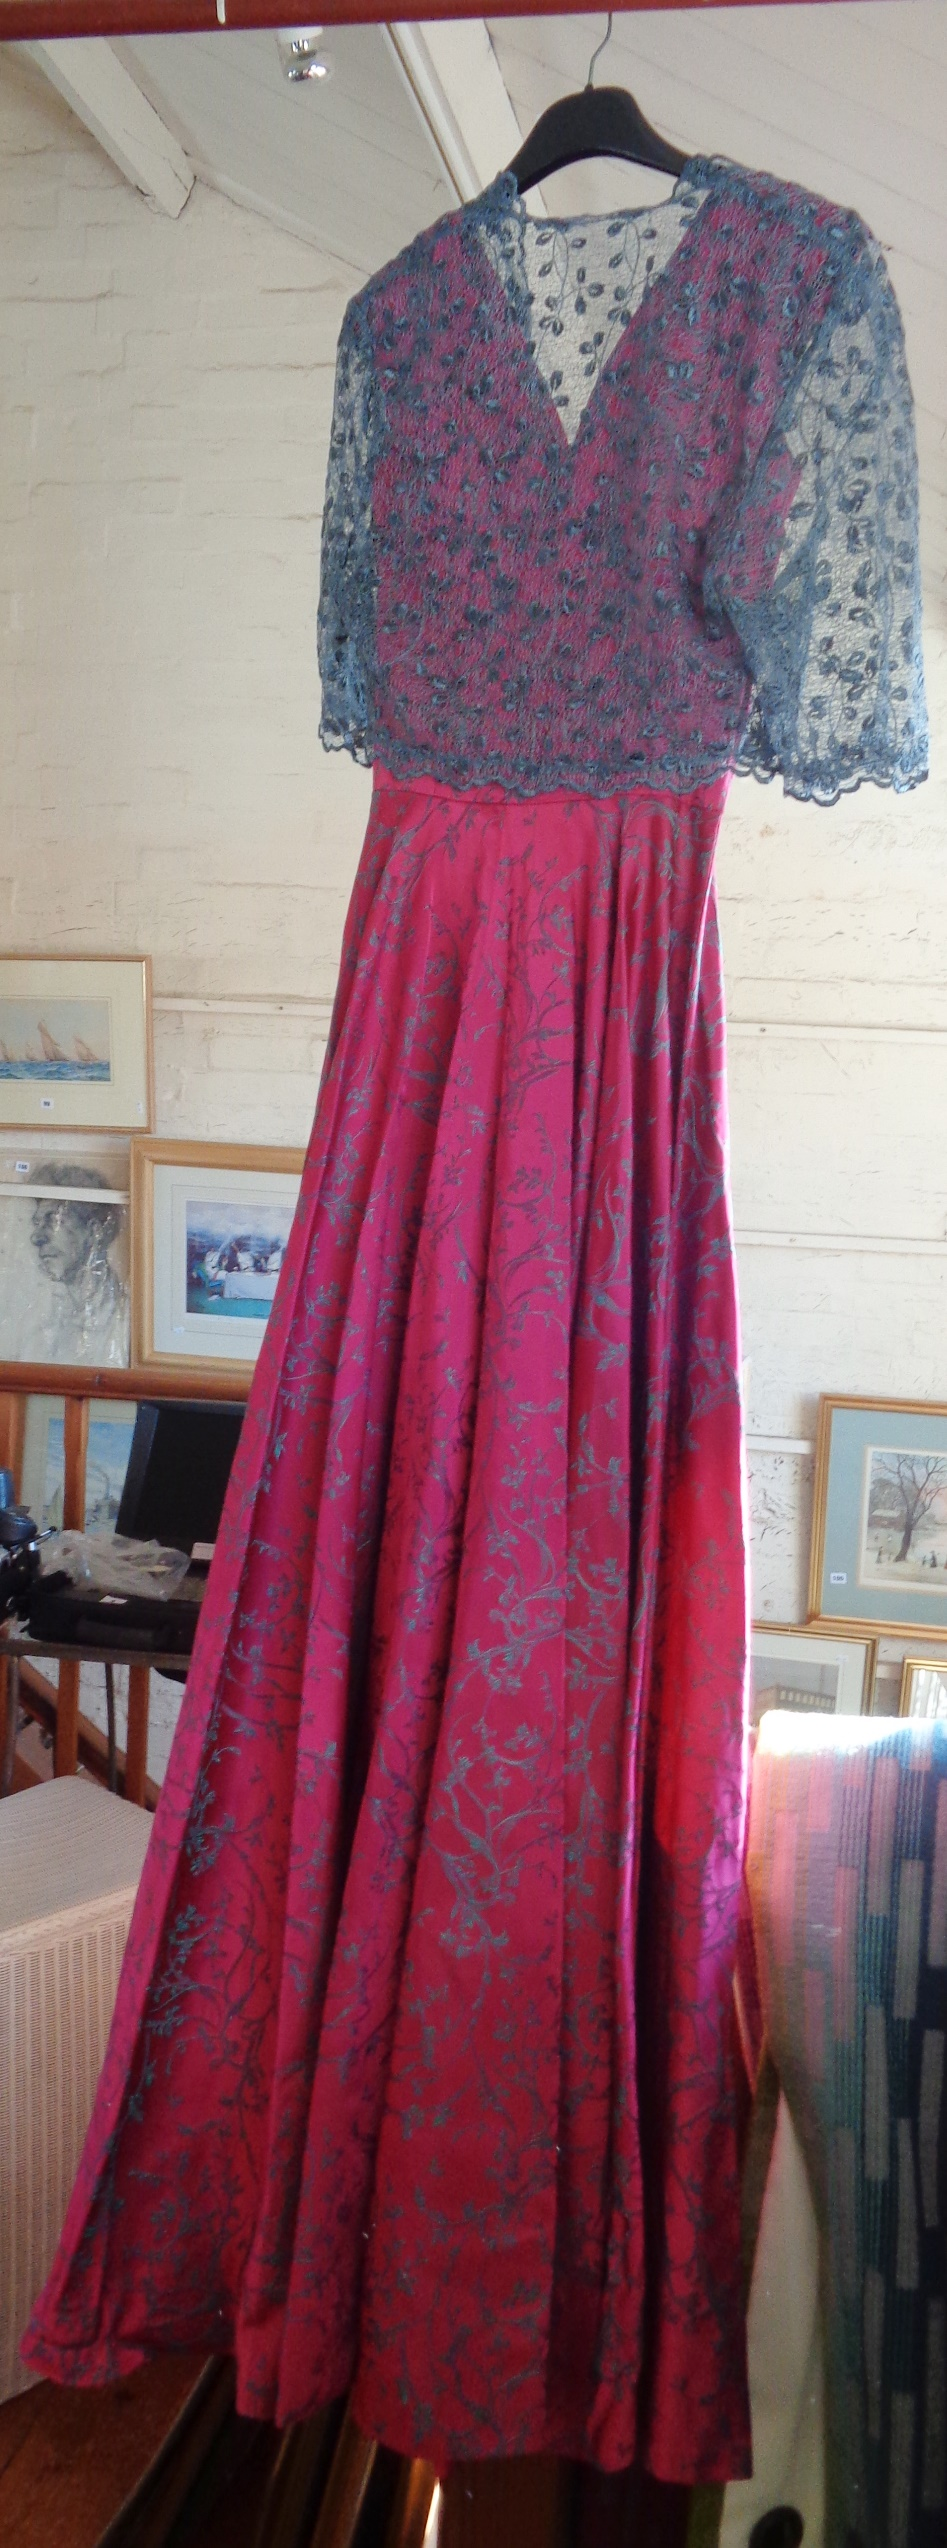 Lot 10 - Vintage clothing: Silk evening dress with train